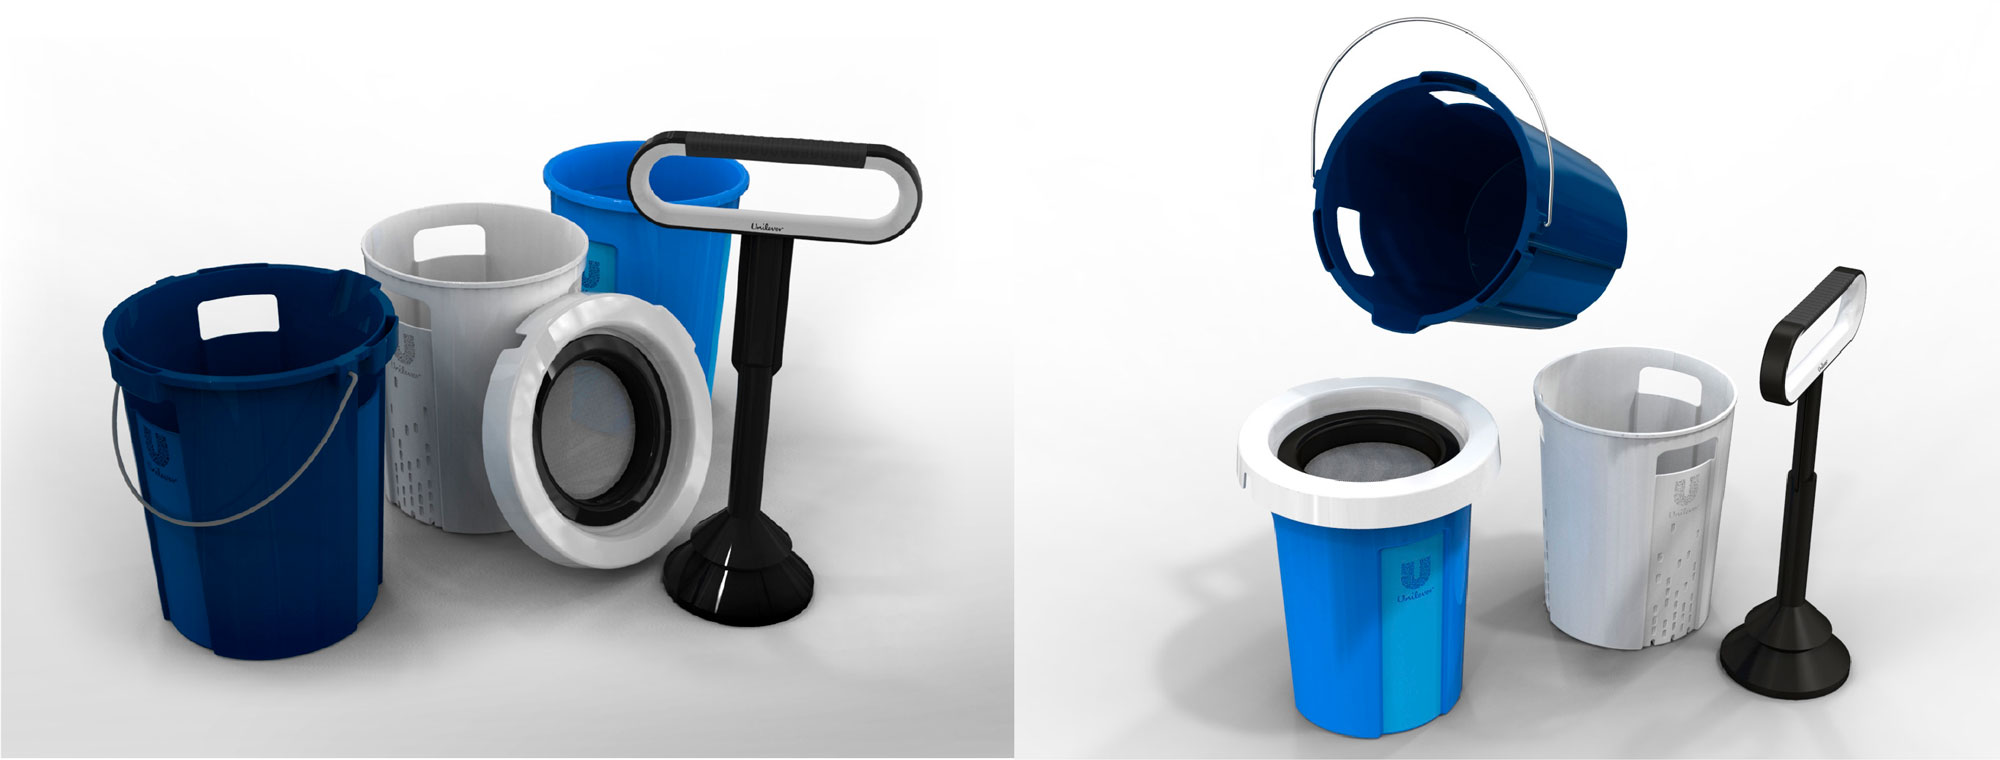 Unilever Product Design for Washer